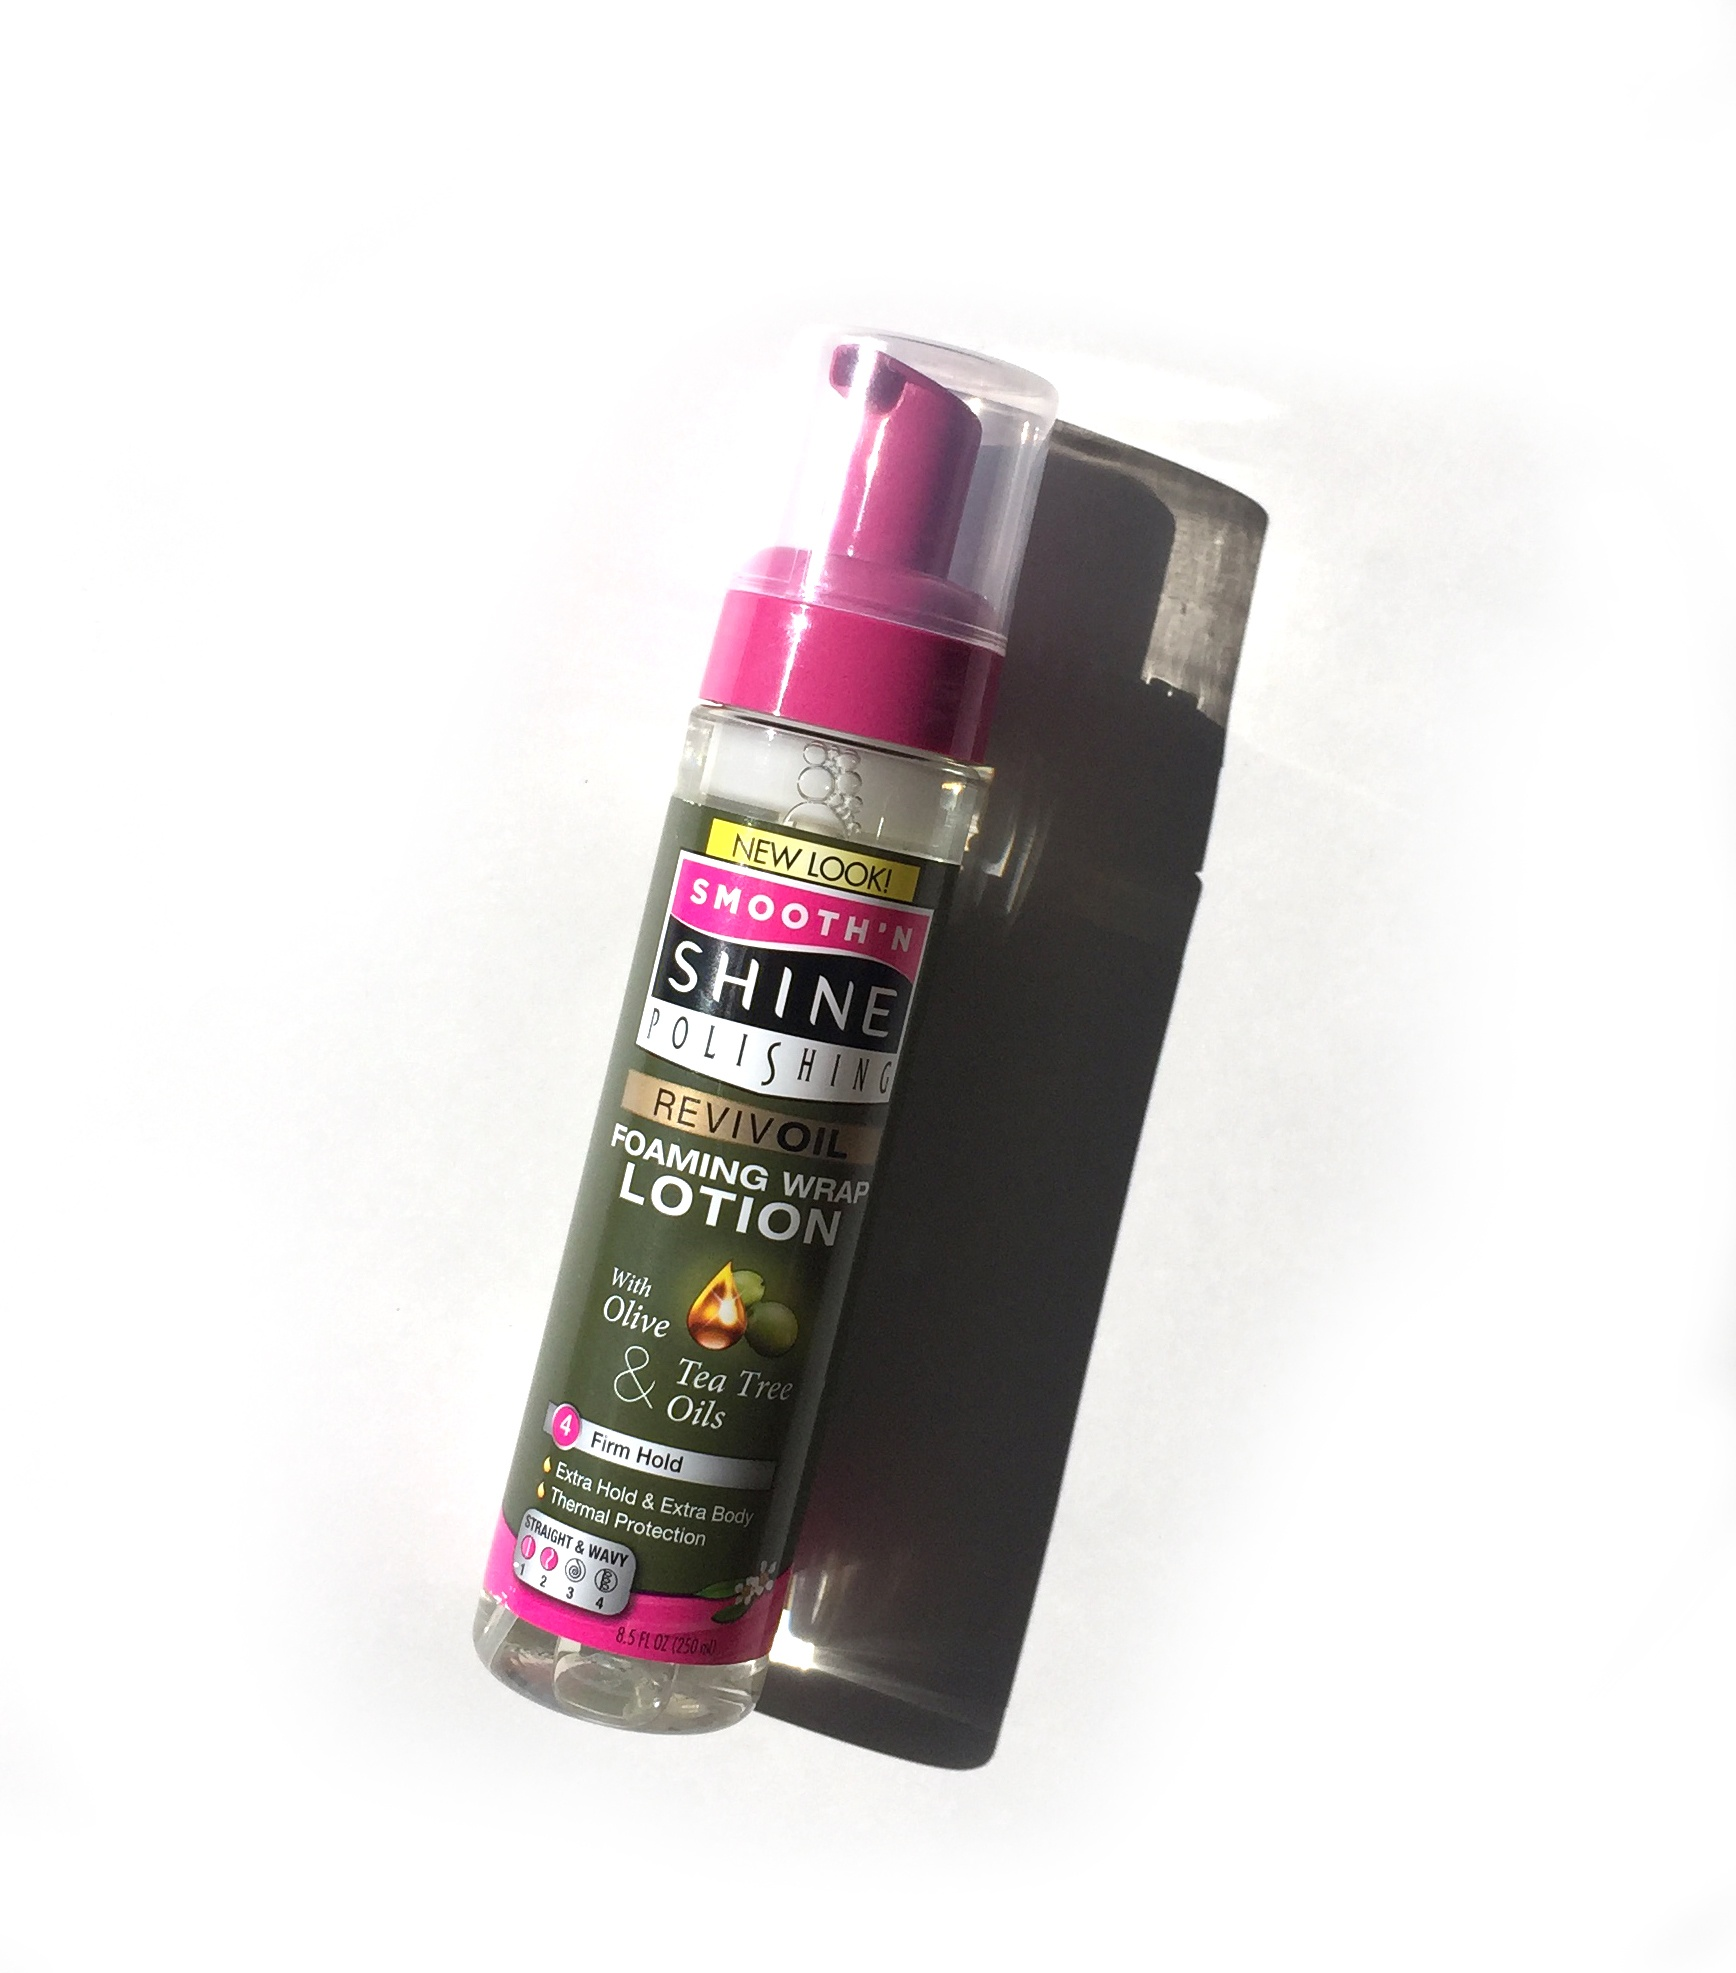 Olive and Tea Tree RevivOil Foaming Wrap Lotion